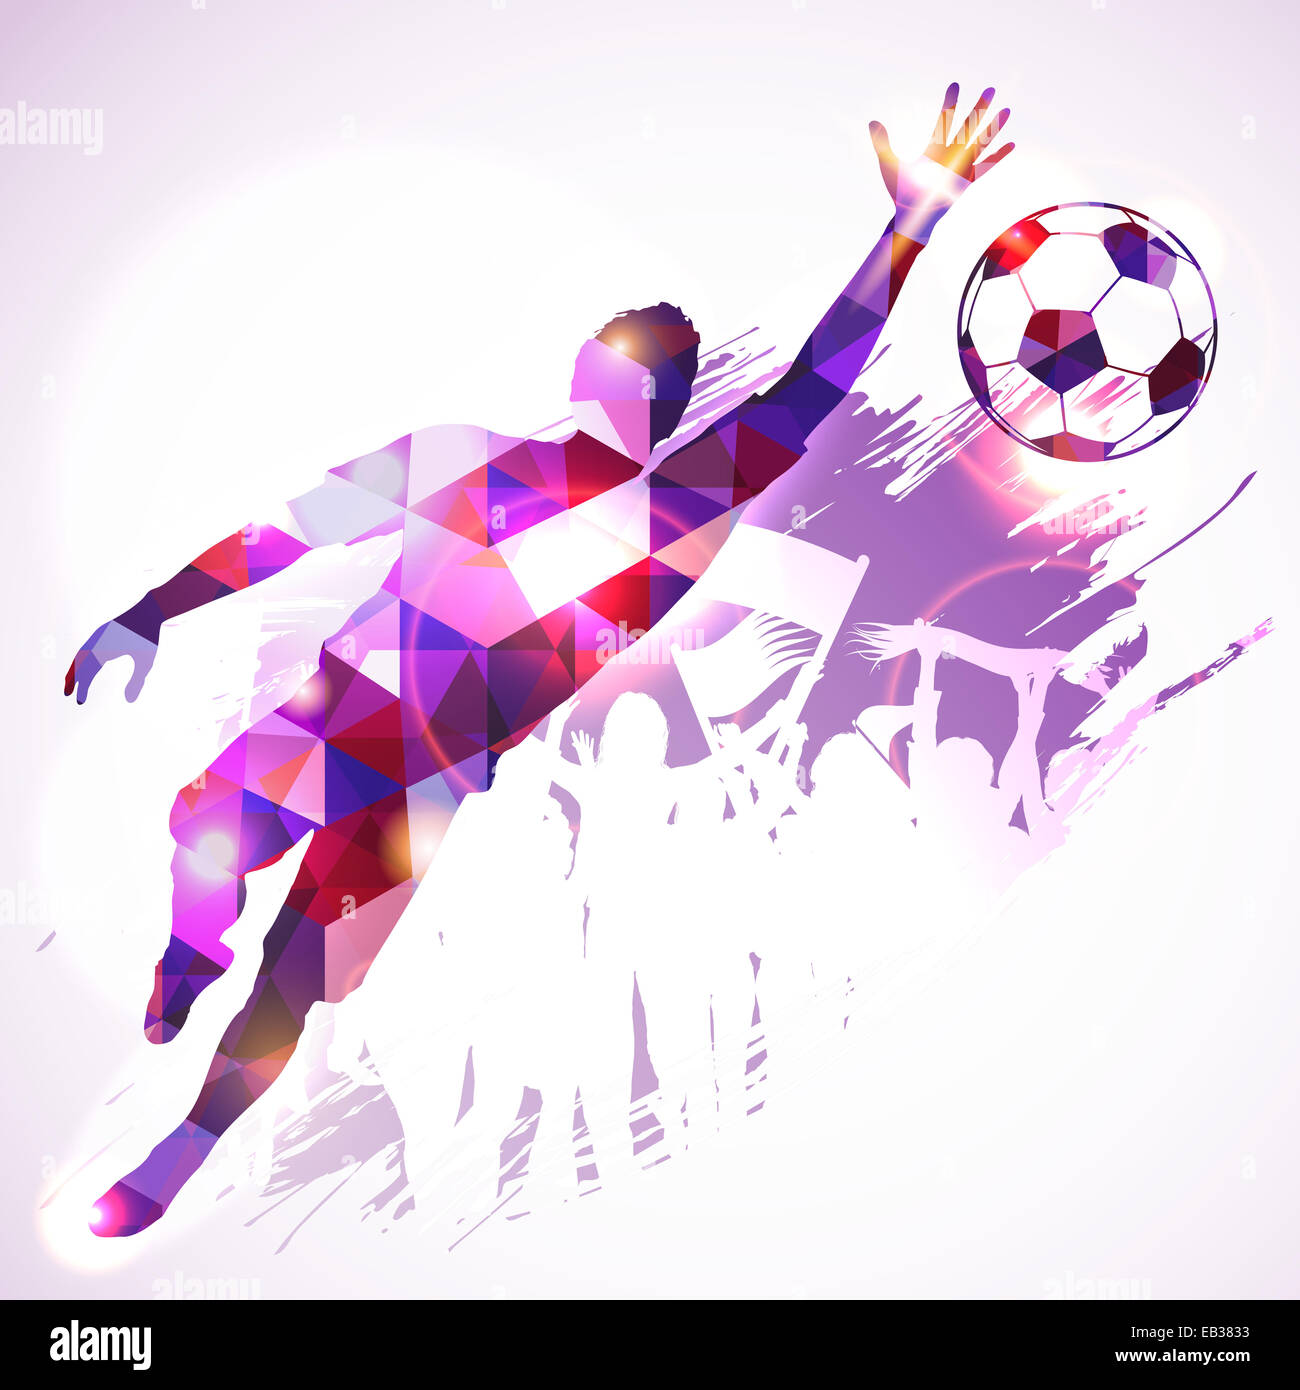 Silhouette Soccer Player Goalkeeper and Fans in Mosaic Pattern on grunge background, illustration. - Stock Image